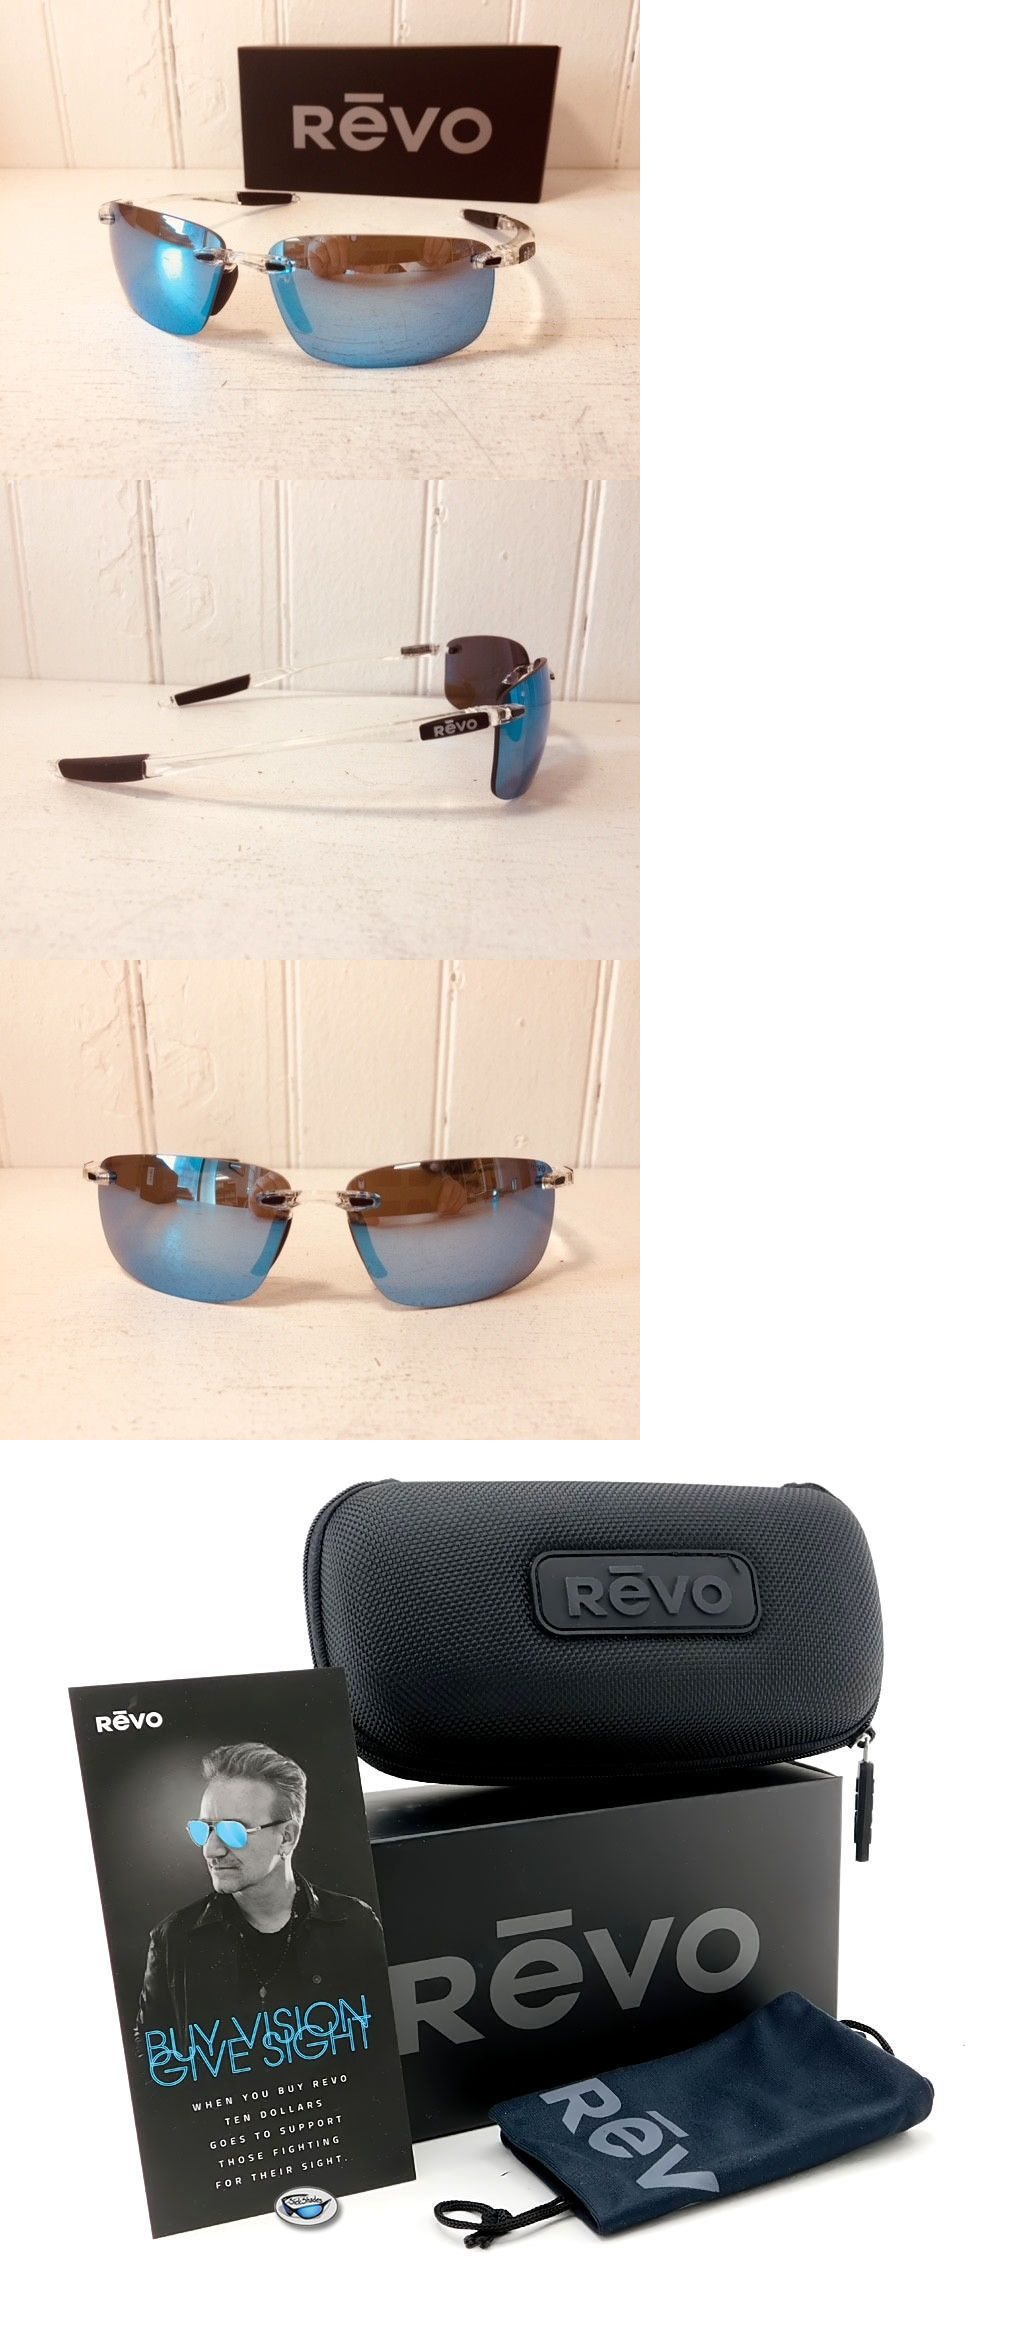 72efe517acd Accessories 179245  Revo Re4059 09 Bl Descend N Crystal W Blue Water  Polarized Lenses Sunglasses -  BUY IT NOW ONLY   128.99 on eBay!